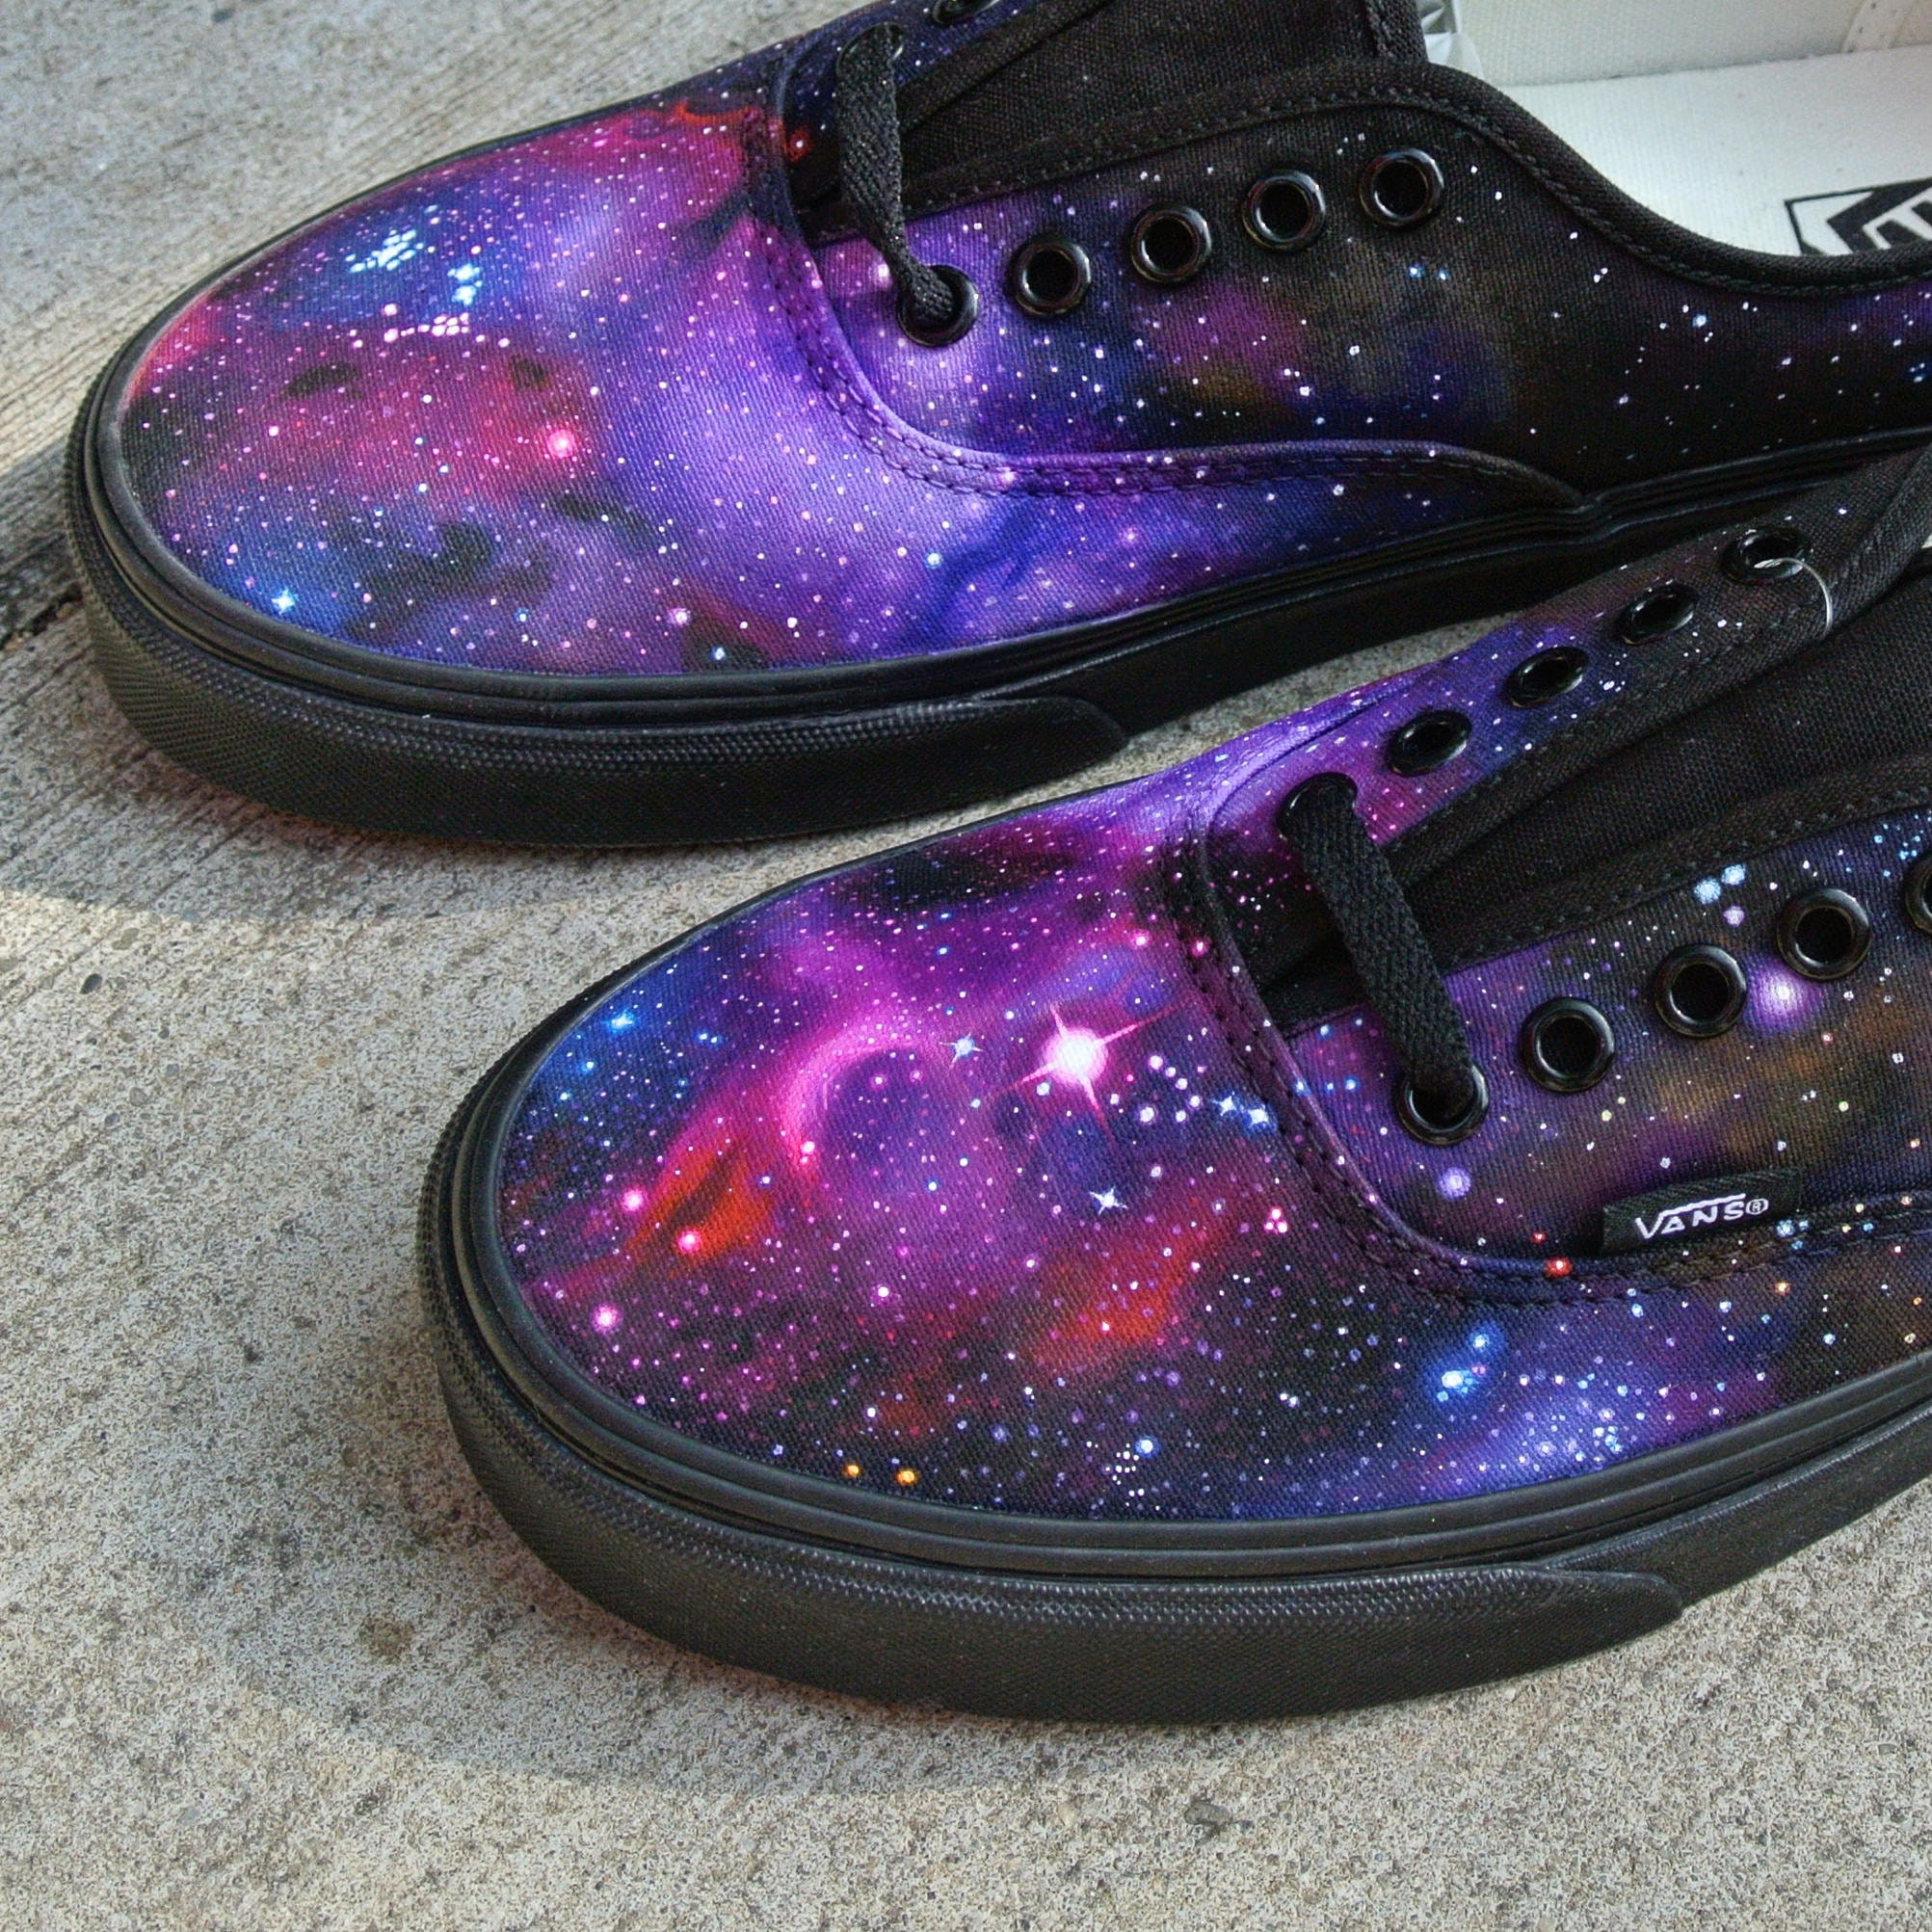 Custom Vans Authentic Galaxy Shoes | made to order | galactic nebulae custom painted design on canvas Vans Authentic sneakers